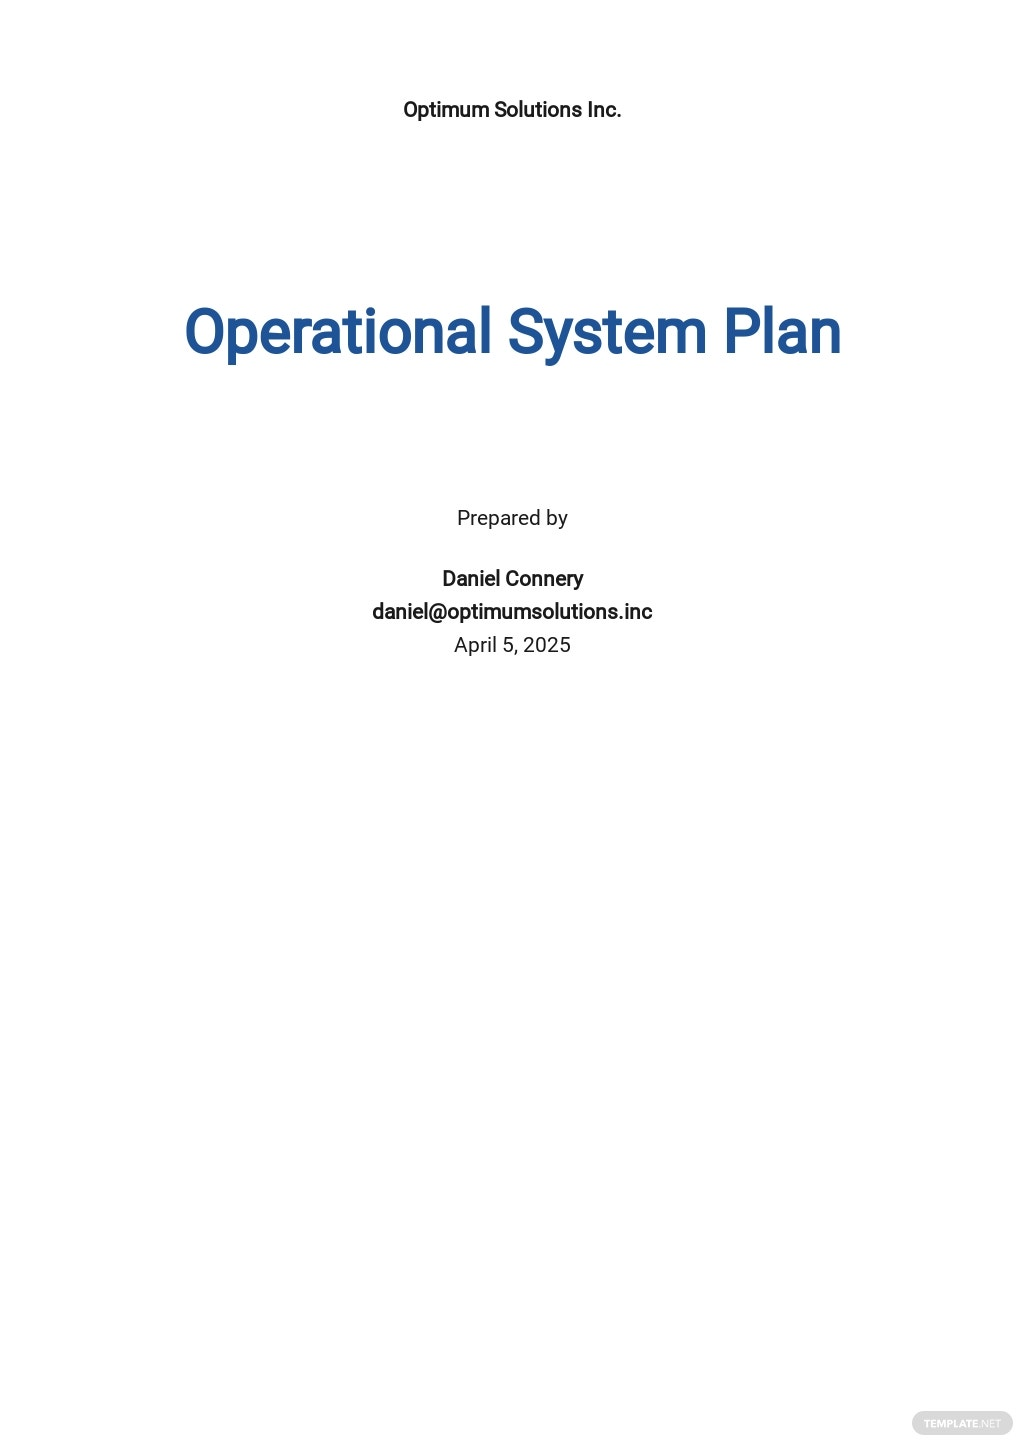 Free Operational System Plan Template.jpe